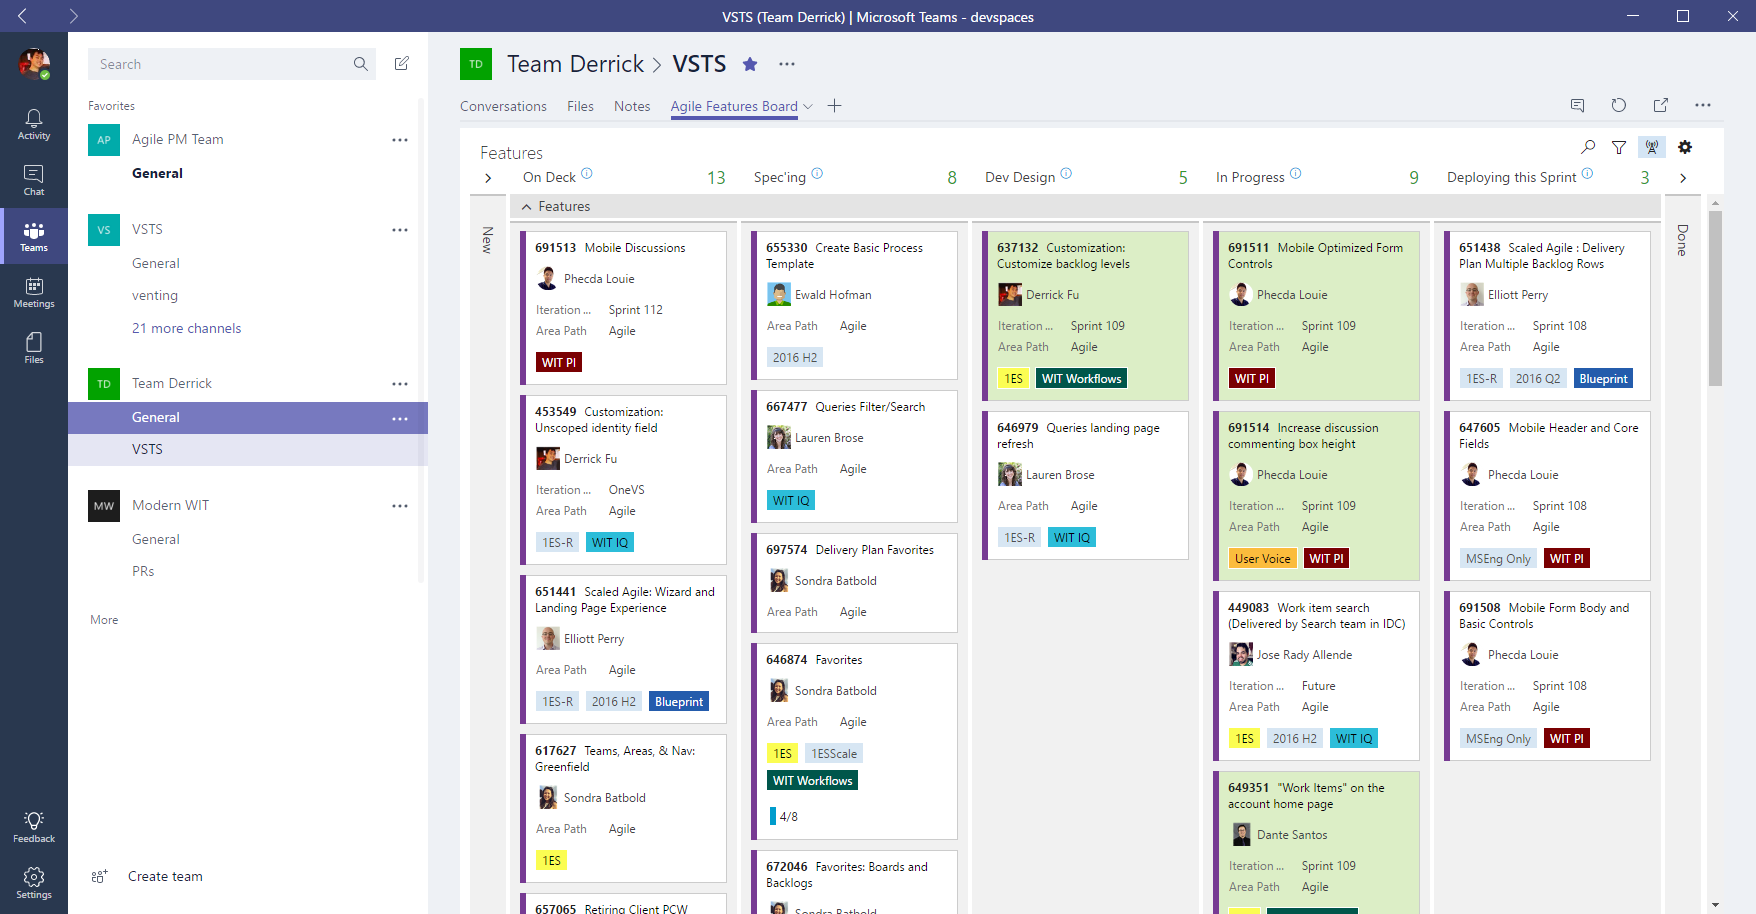 microsoft teams - photo #18